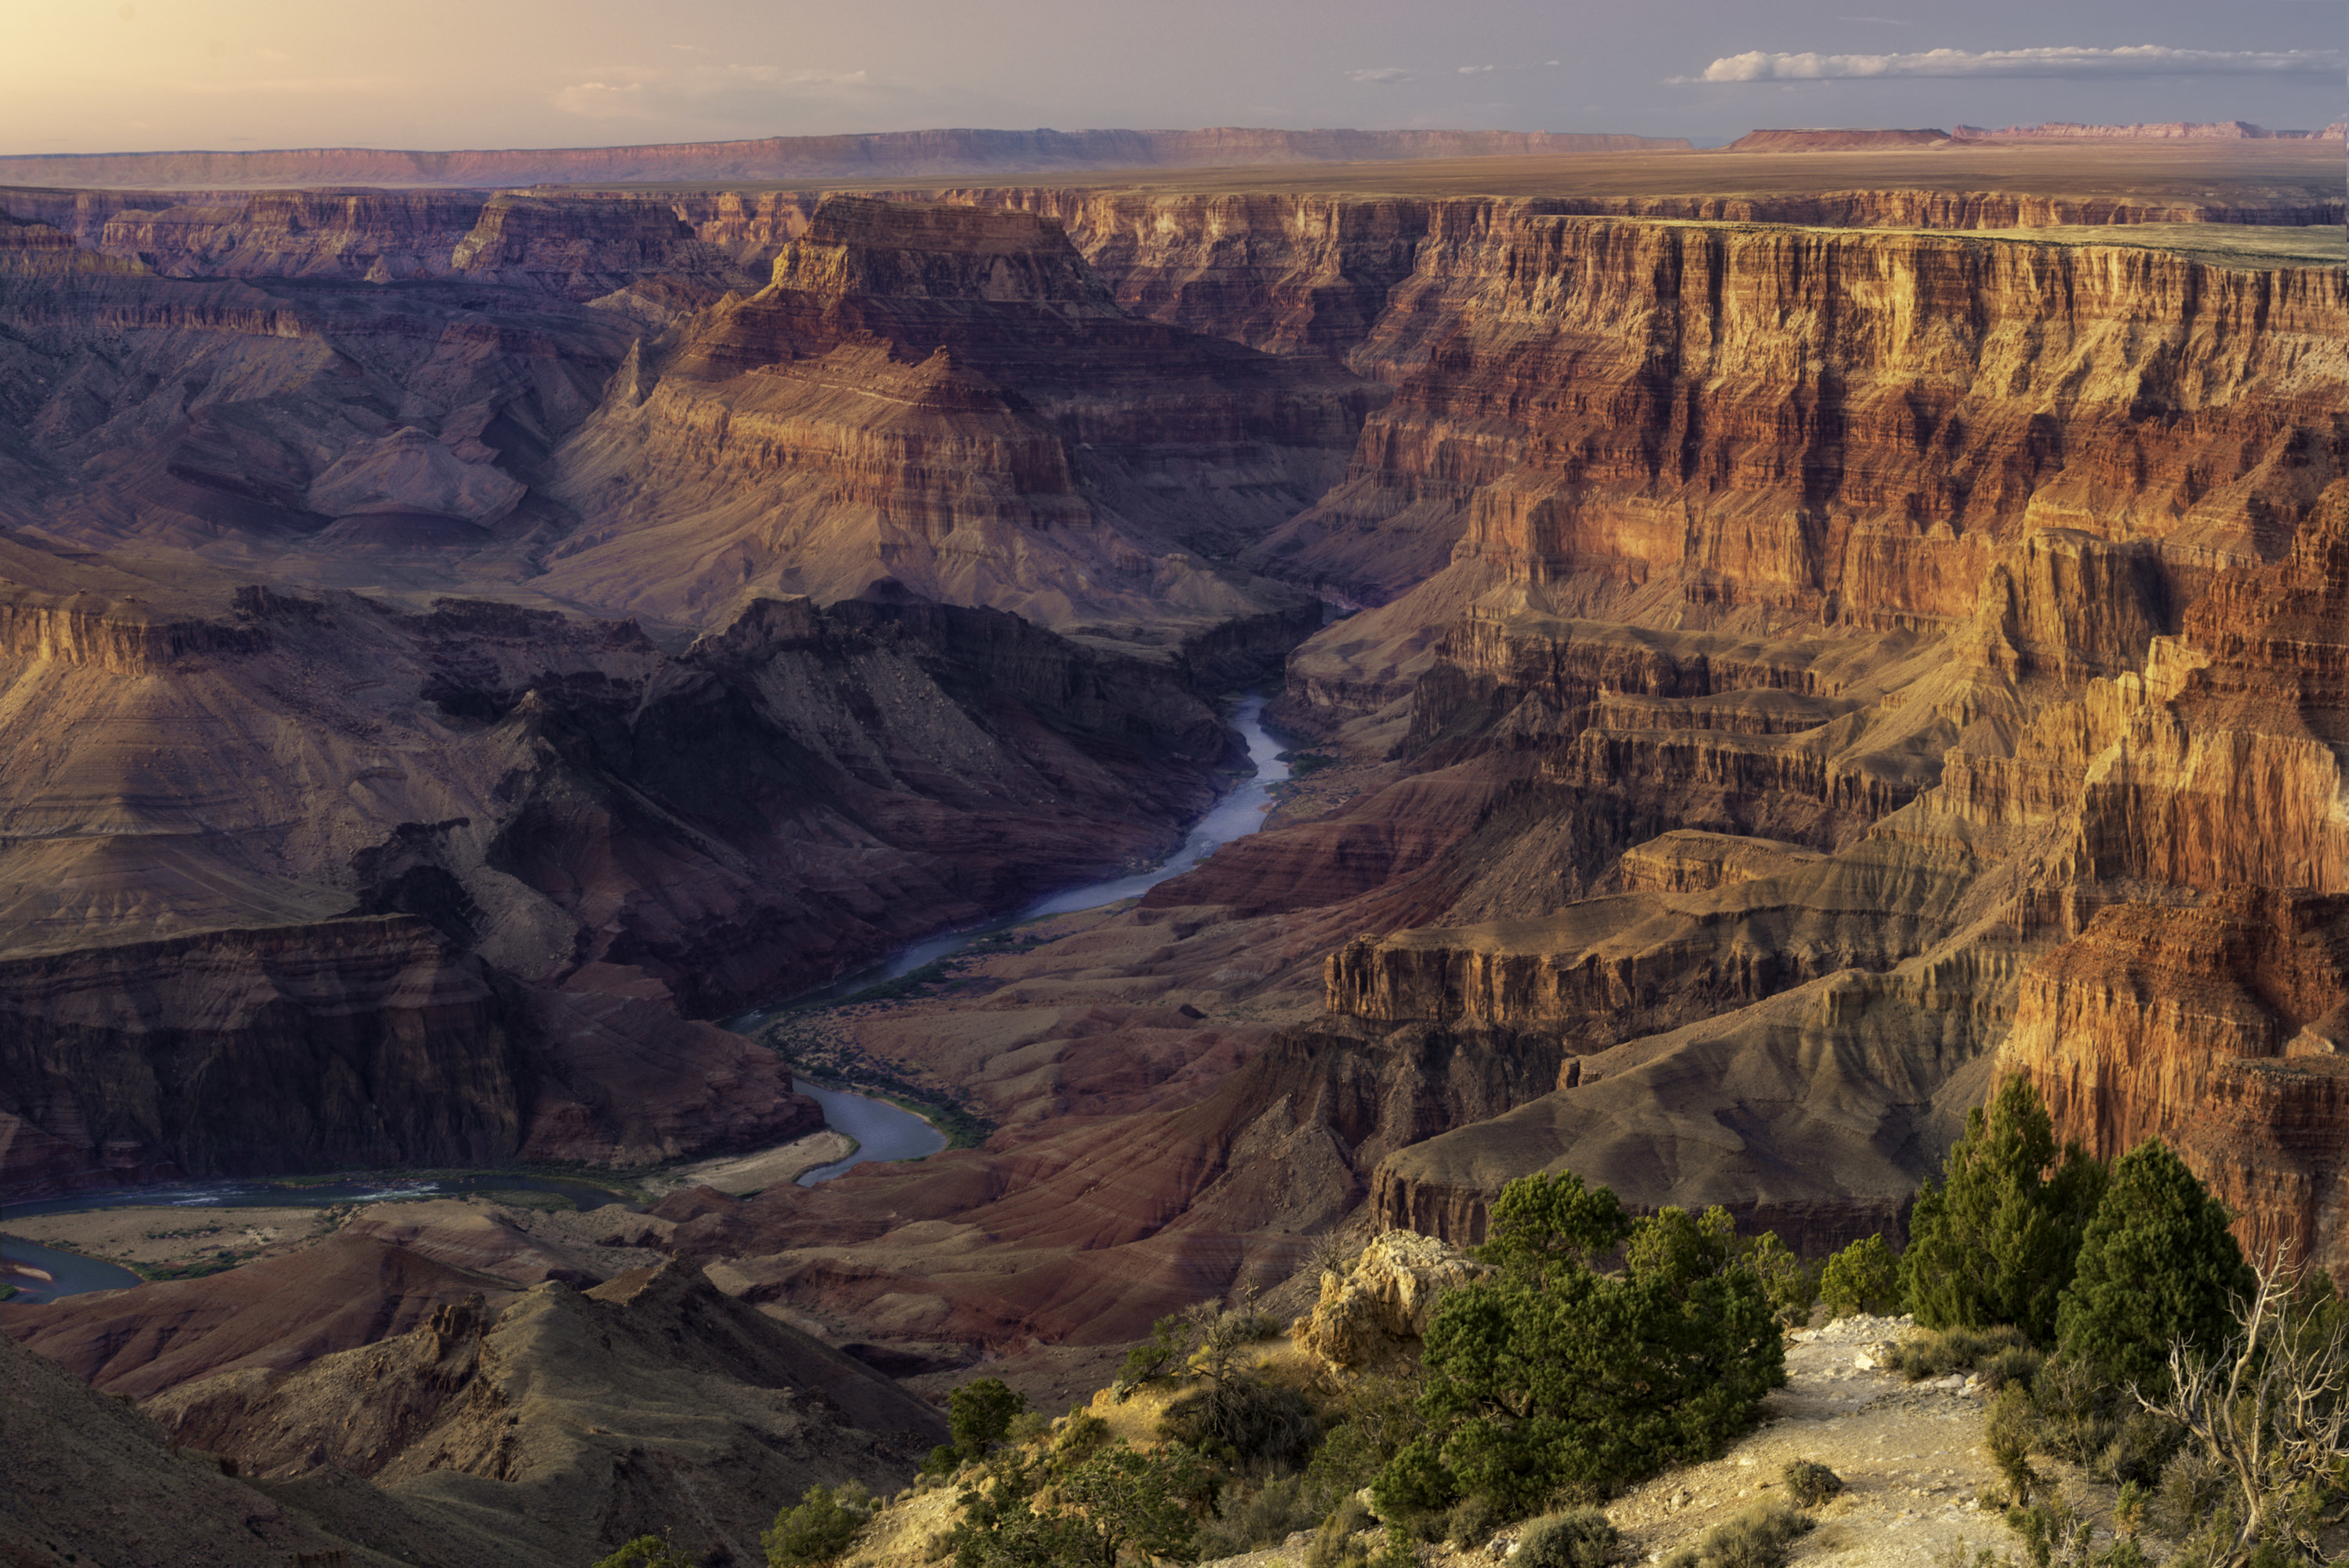 Water coursing through the grand Canyon after sunset.